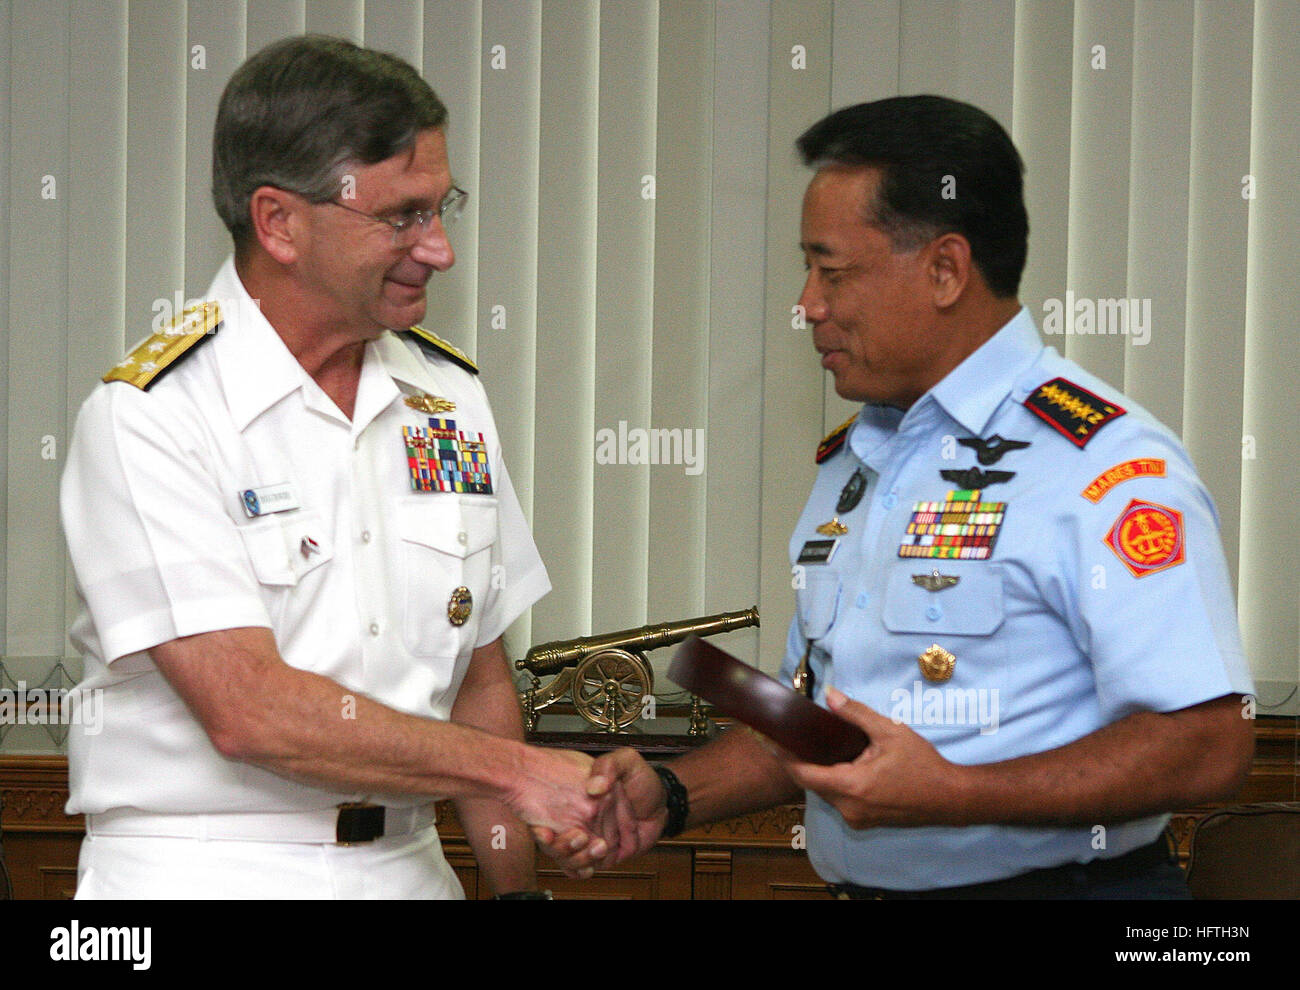 070308-N-1113S-001 JAKARTA, Indonesia (March 8, 2007) - Commander U.S. 7th Fleet Vice Adm. Doug Crowder and Commander - Stock Image